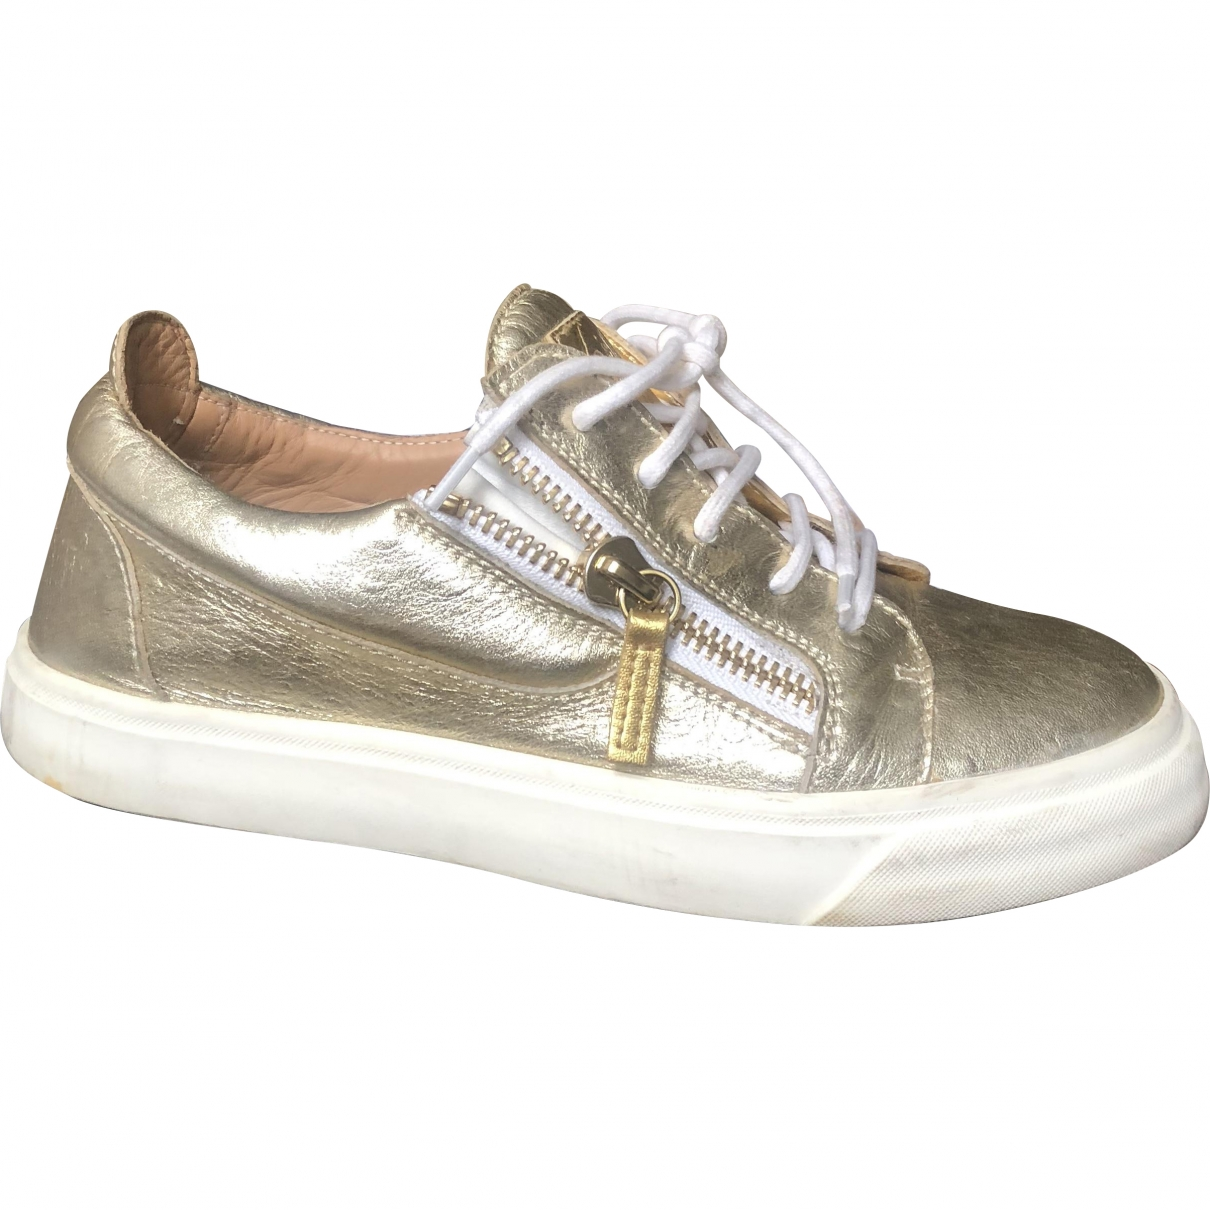 Giuseppe Zanotti Nicki Gold Leather Trainers for Women 38 EU